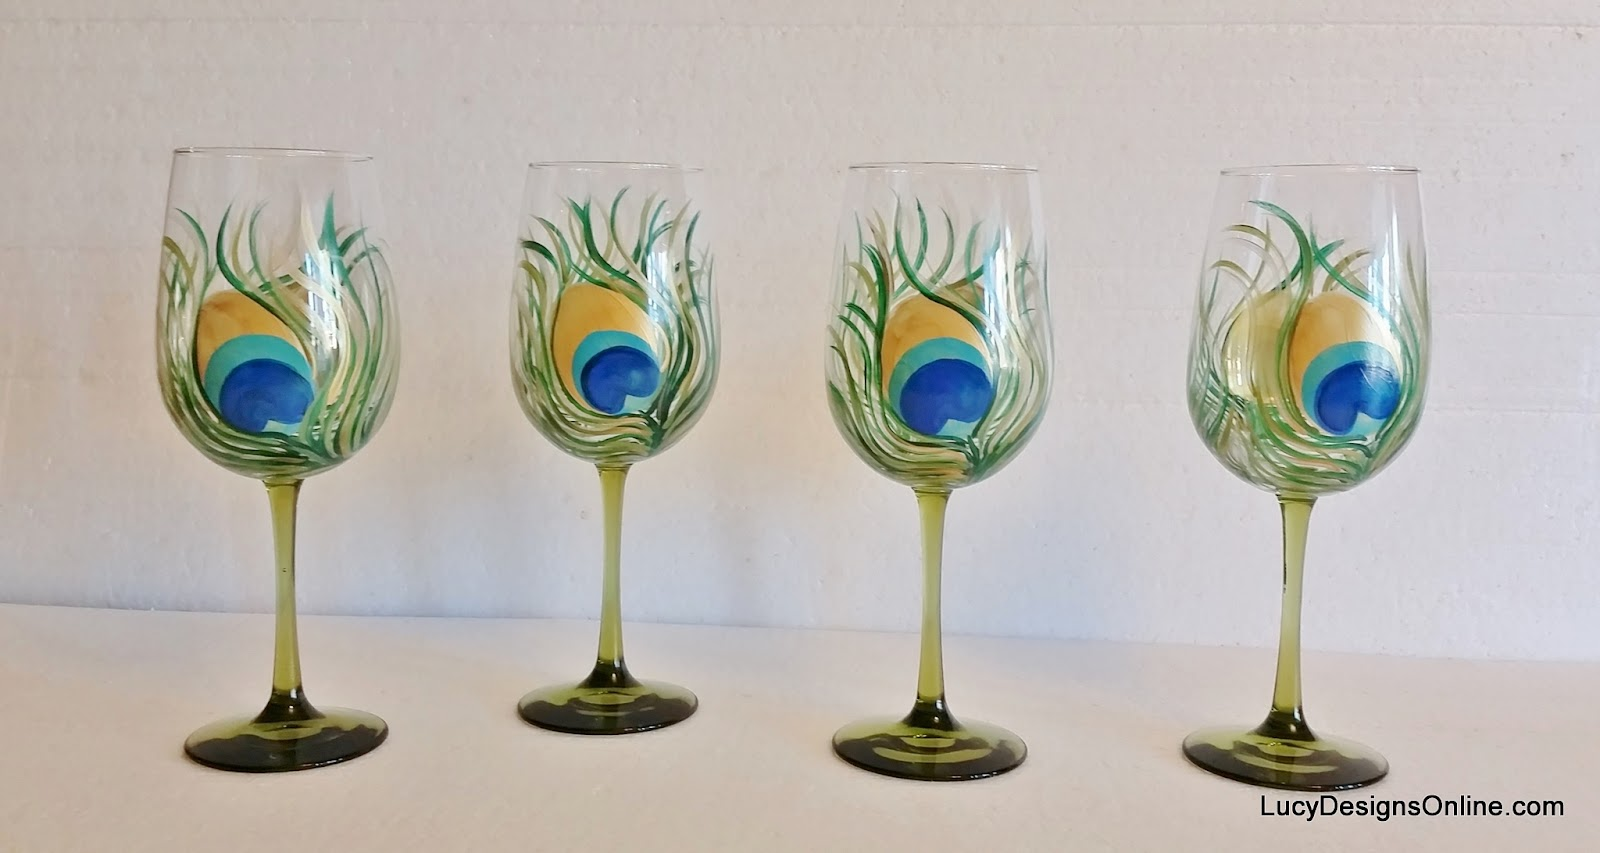 Diy Hand Painted Wine Glasses With Peacock Feather Design Tutorial